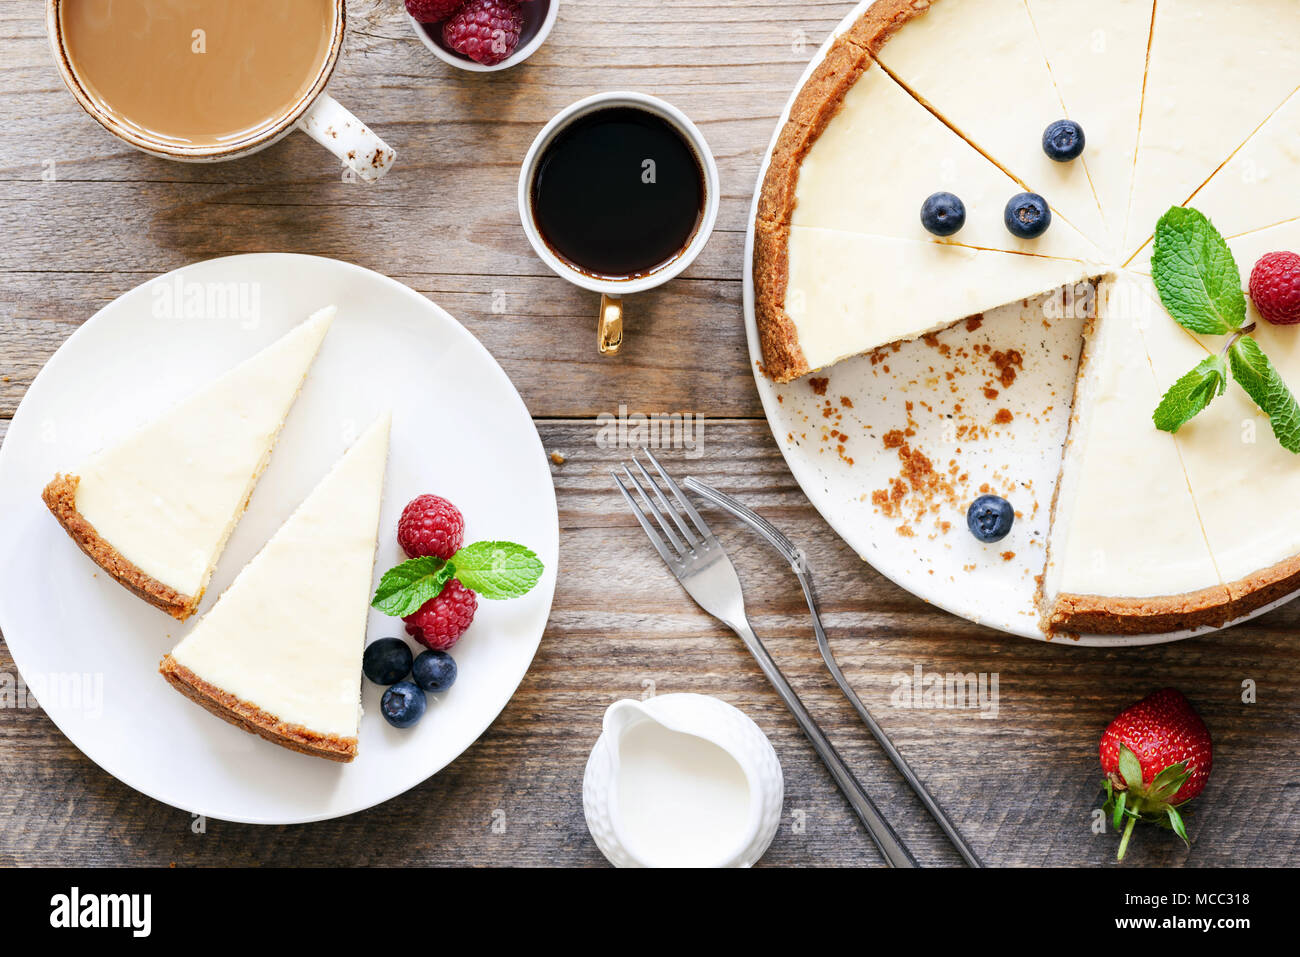 Homemade classical New York cheesecake and coffee on wooden table. Top view - Stock Image